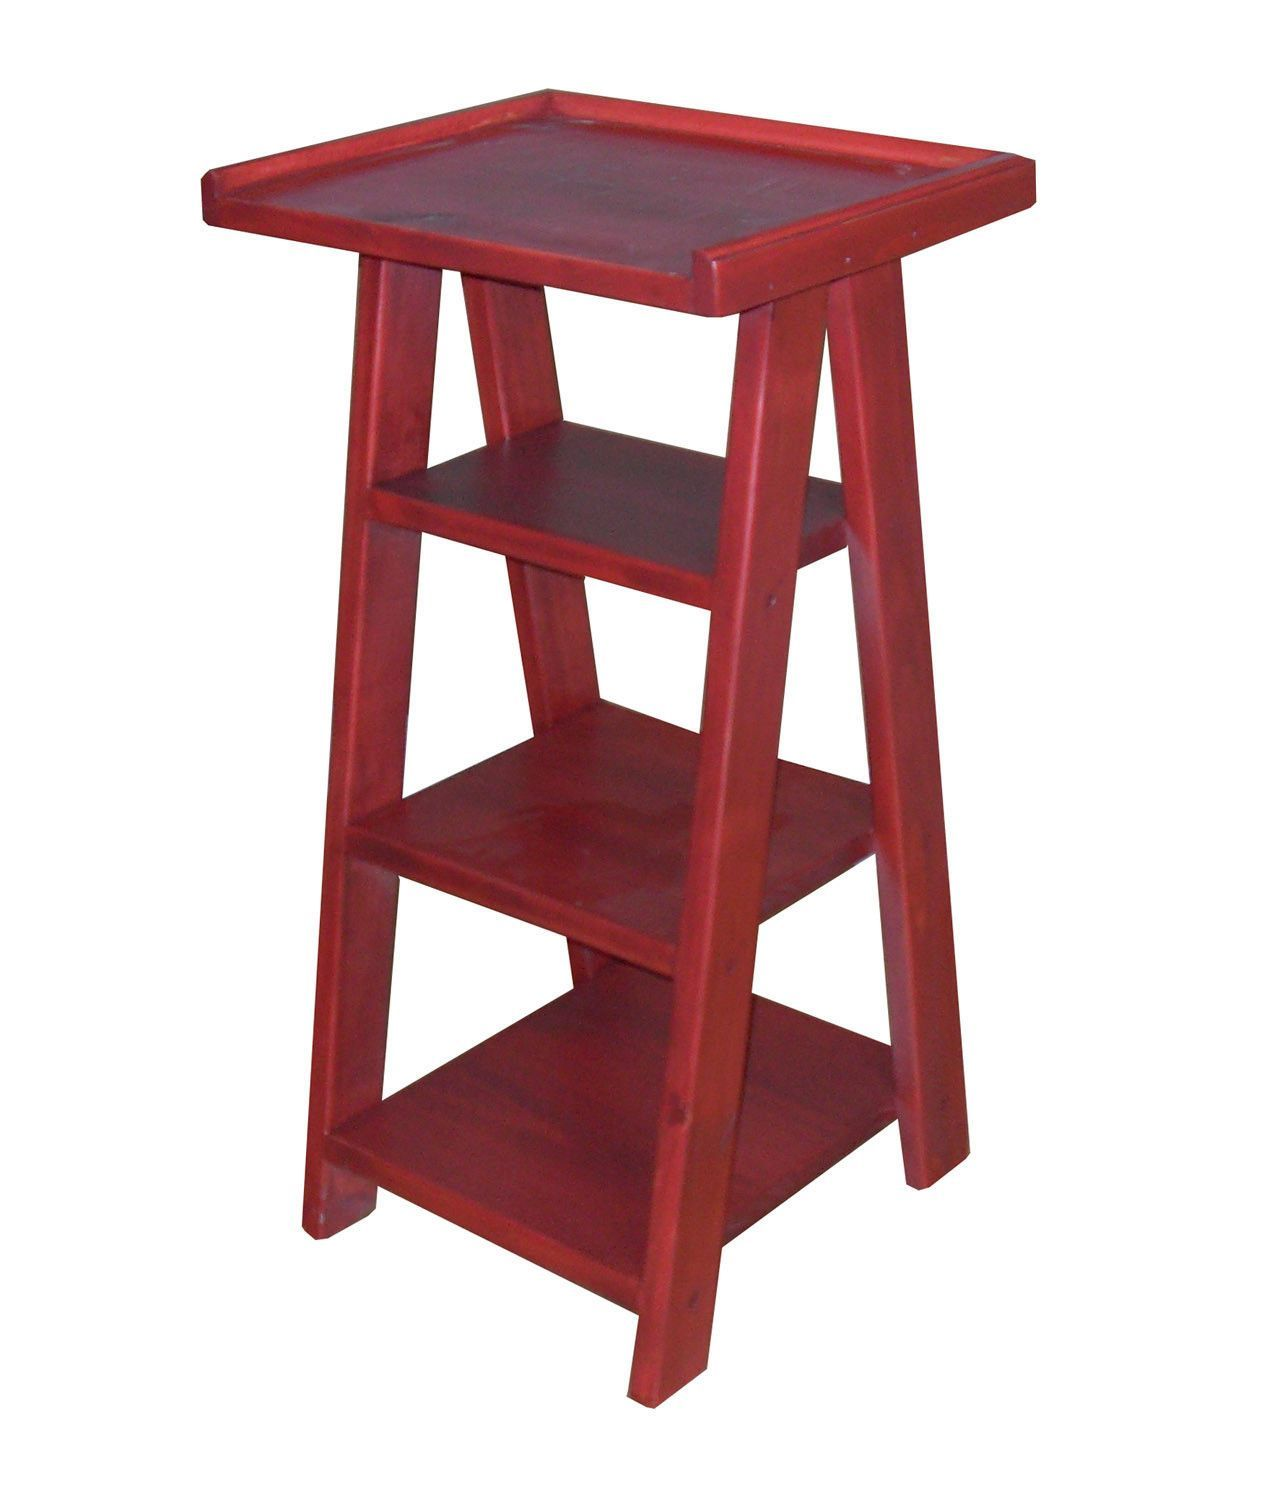 Ladder Telephone Table by 2 Day Designs 110